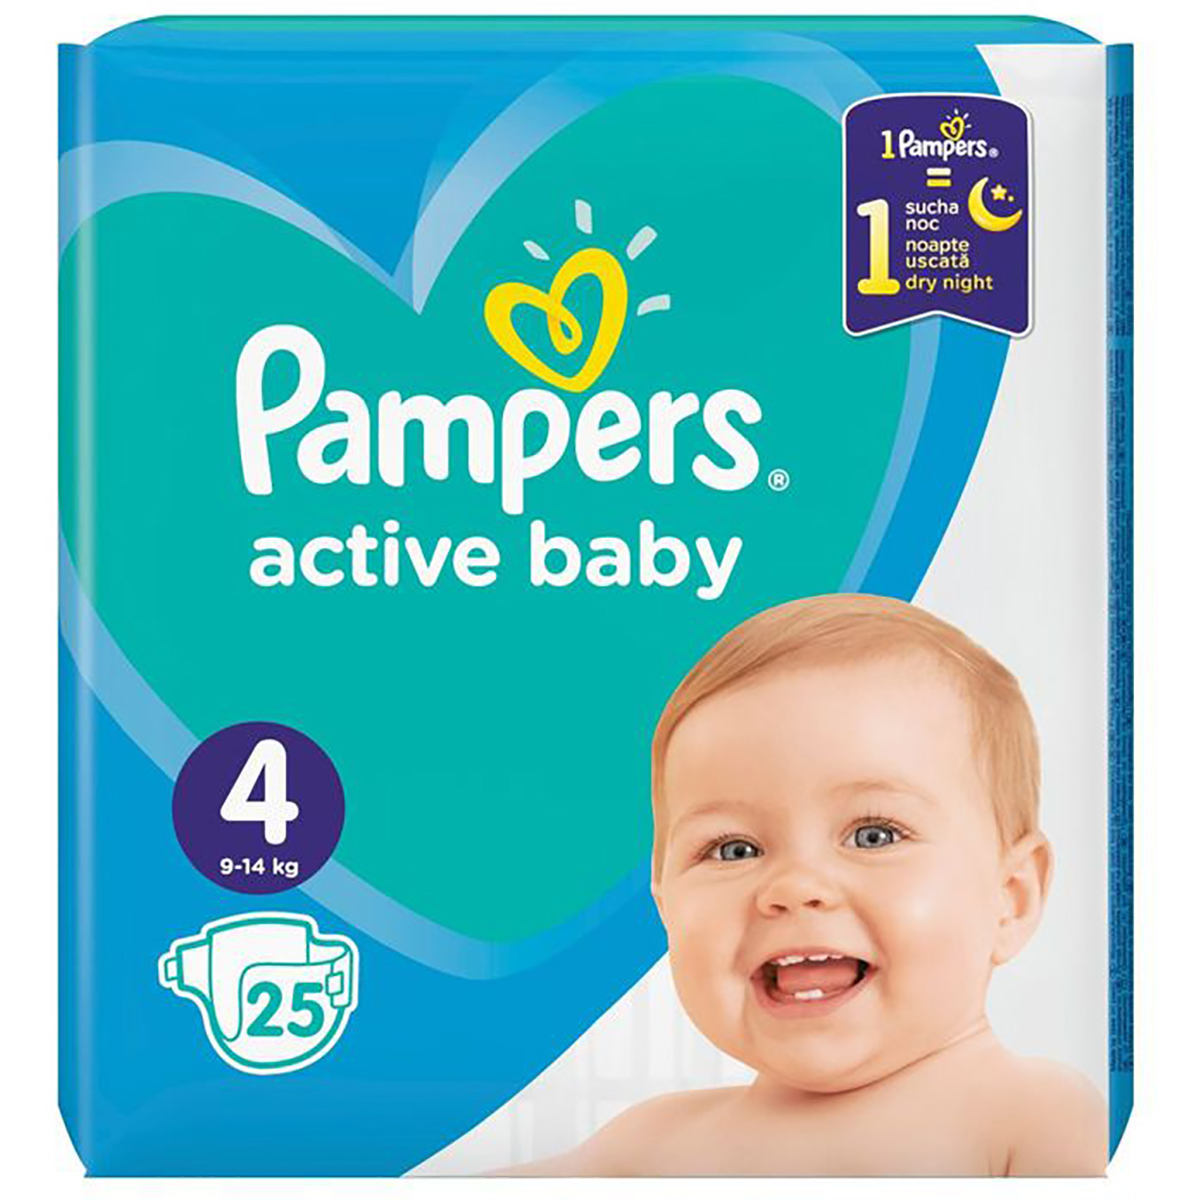 Scutece Pampers Active Baby, Nr 4, 9 - 14 Kg, 25 buc imagine